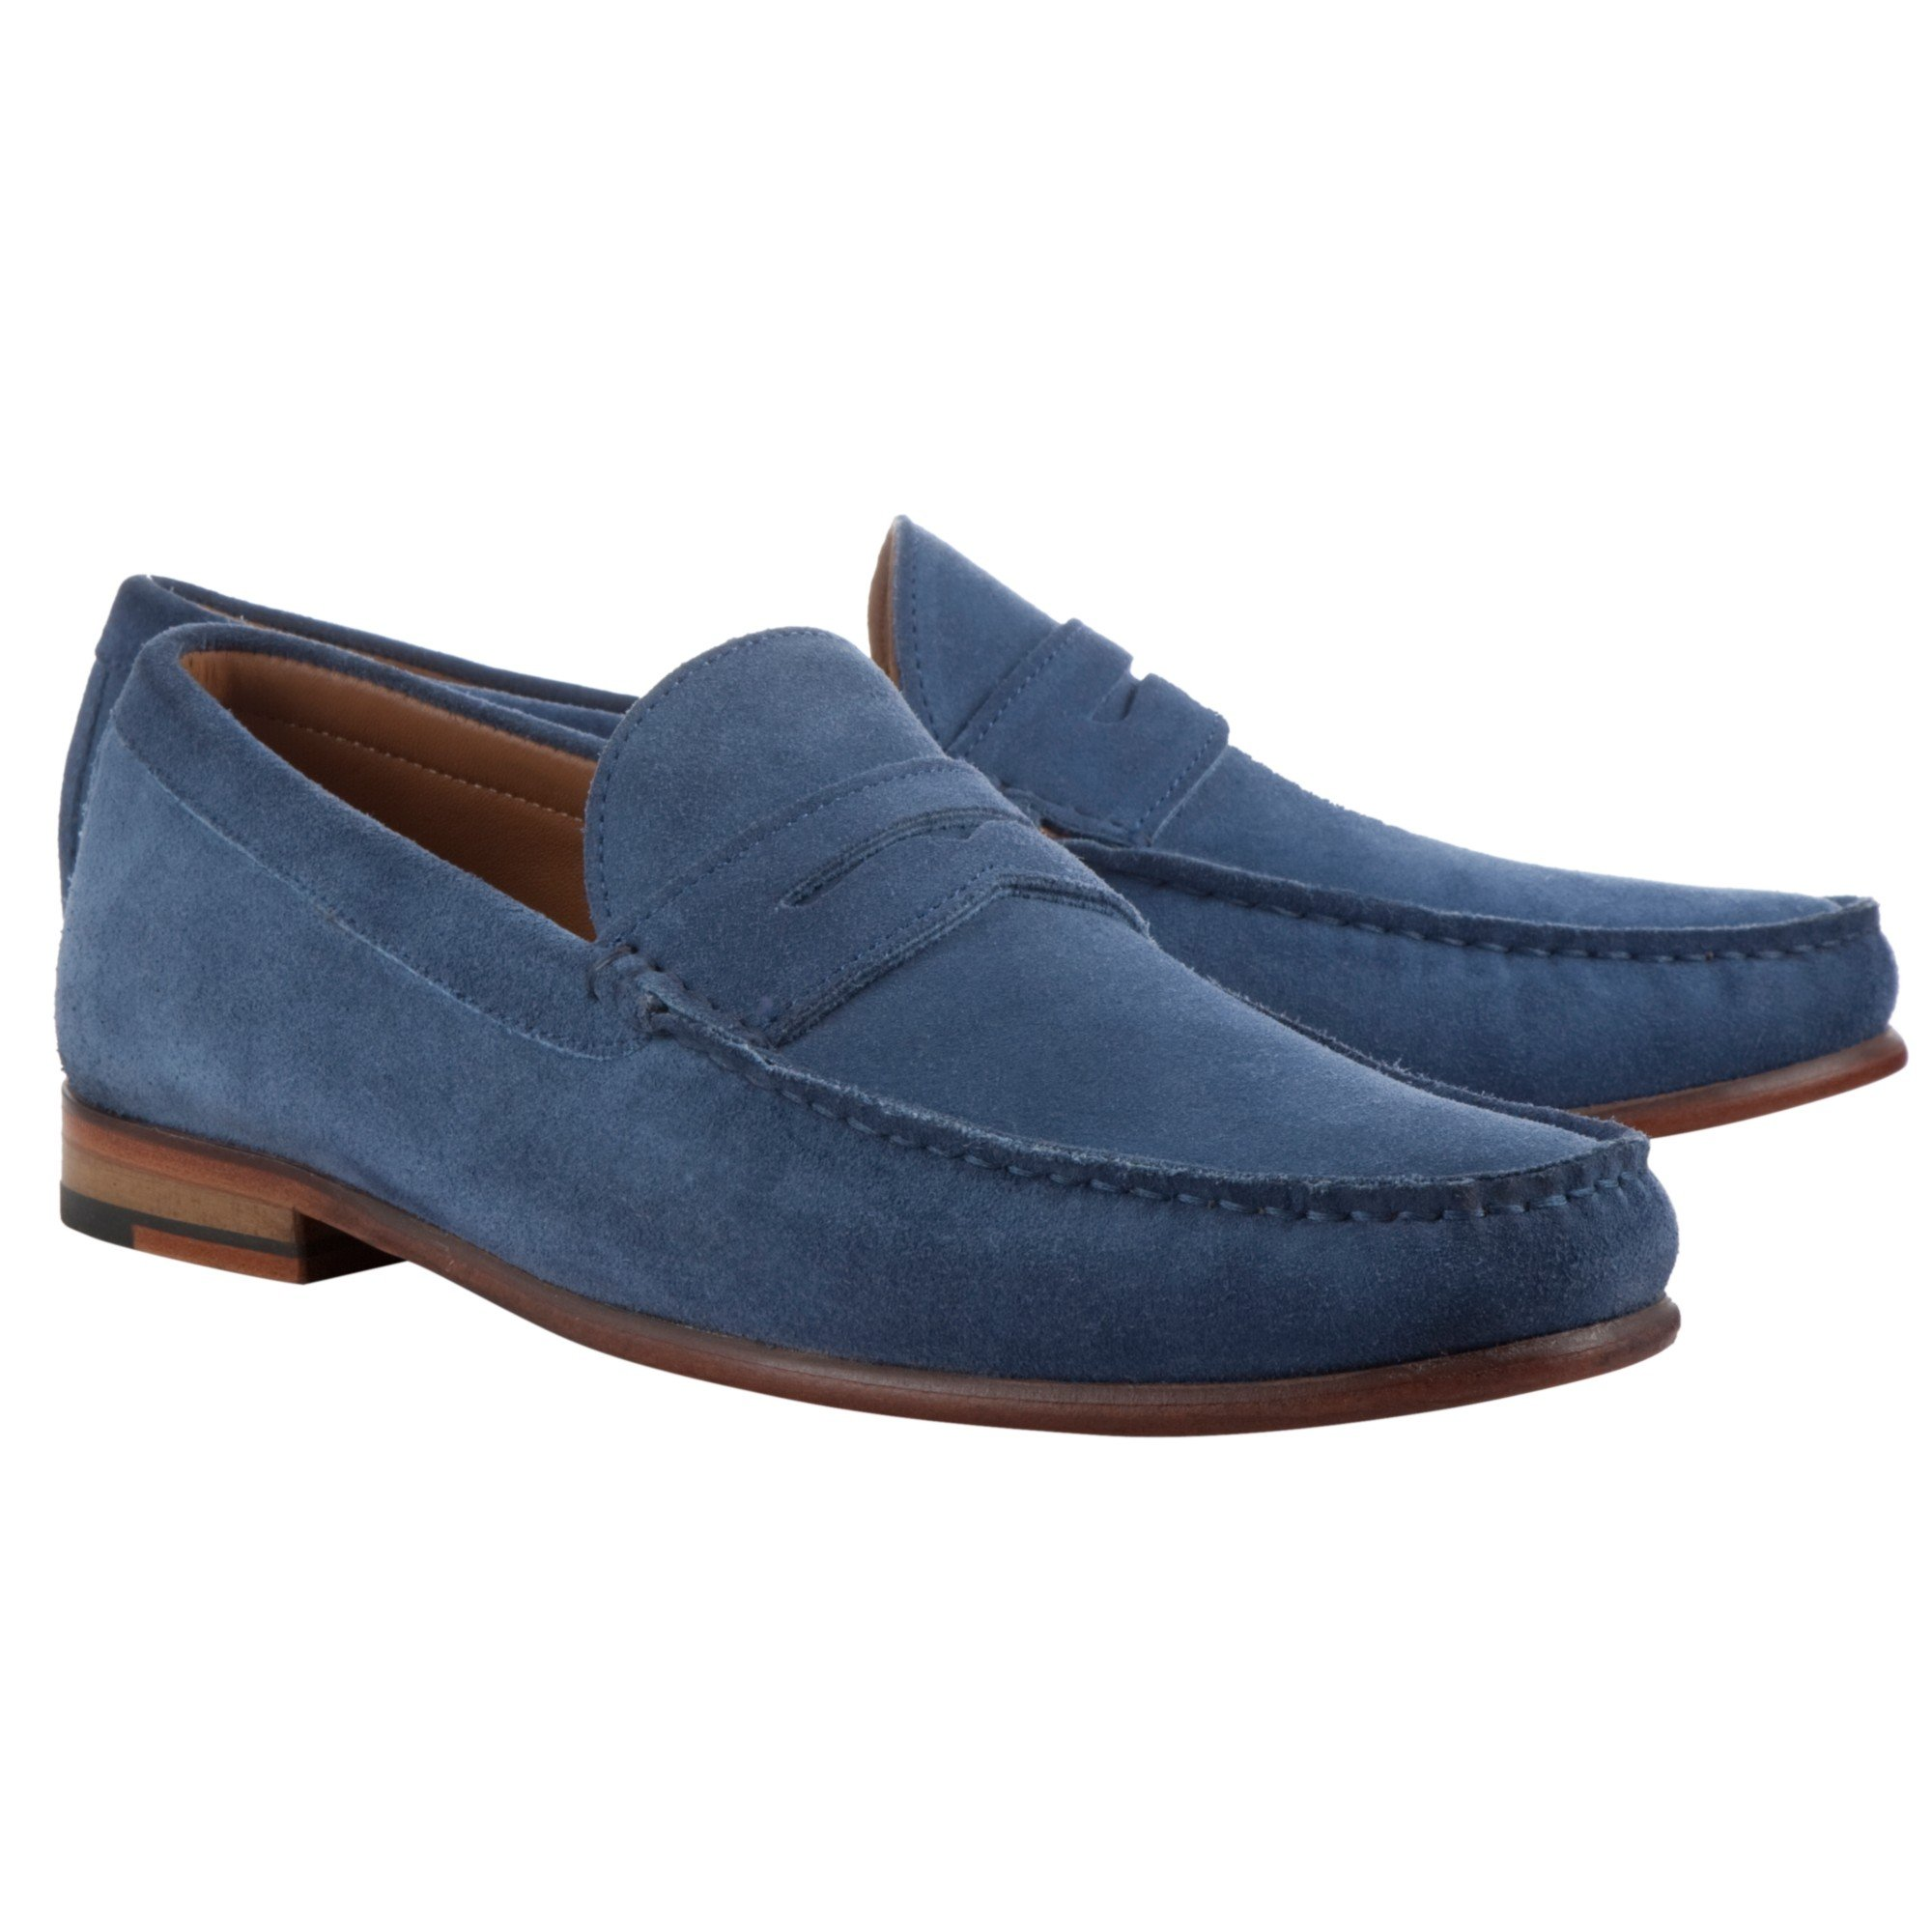 c40b44938ab John Lewis Lloyd Suede Penny Loafers in Blue for Men - Lyst